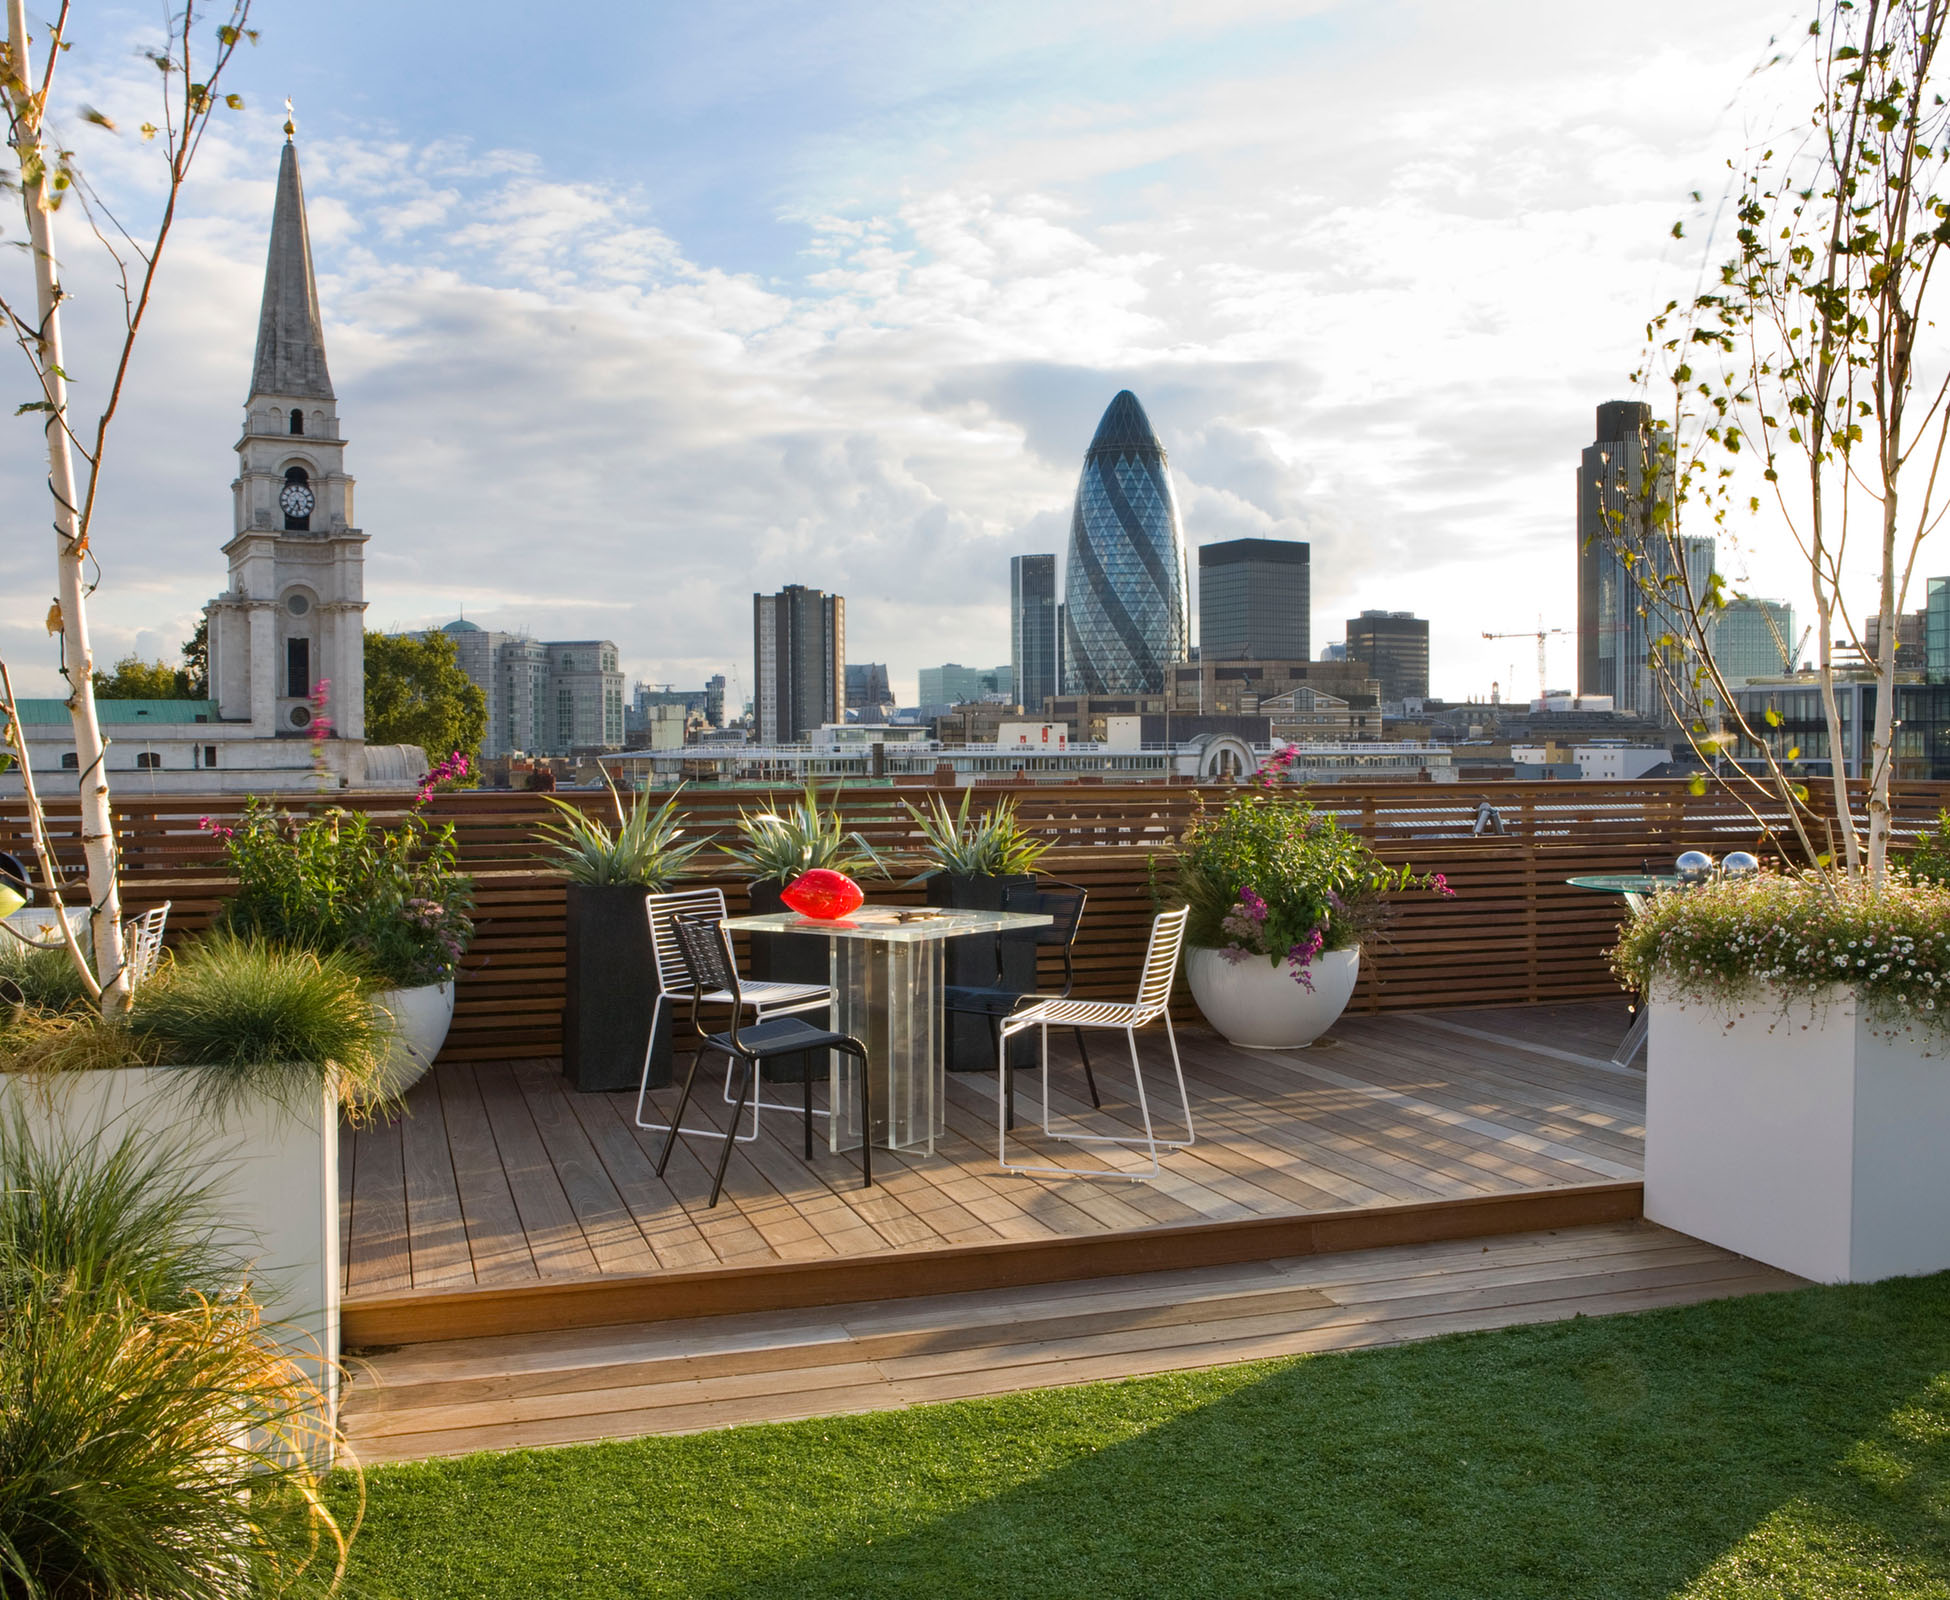 View of London's skyline and famous city landmarks from this rooftop terrace in the heart of Shoreditch.